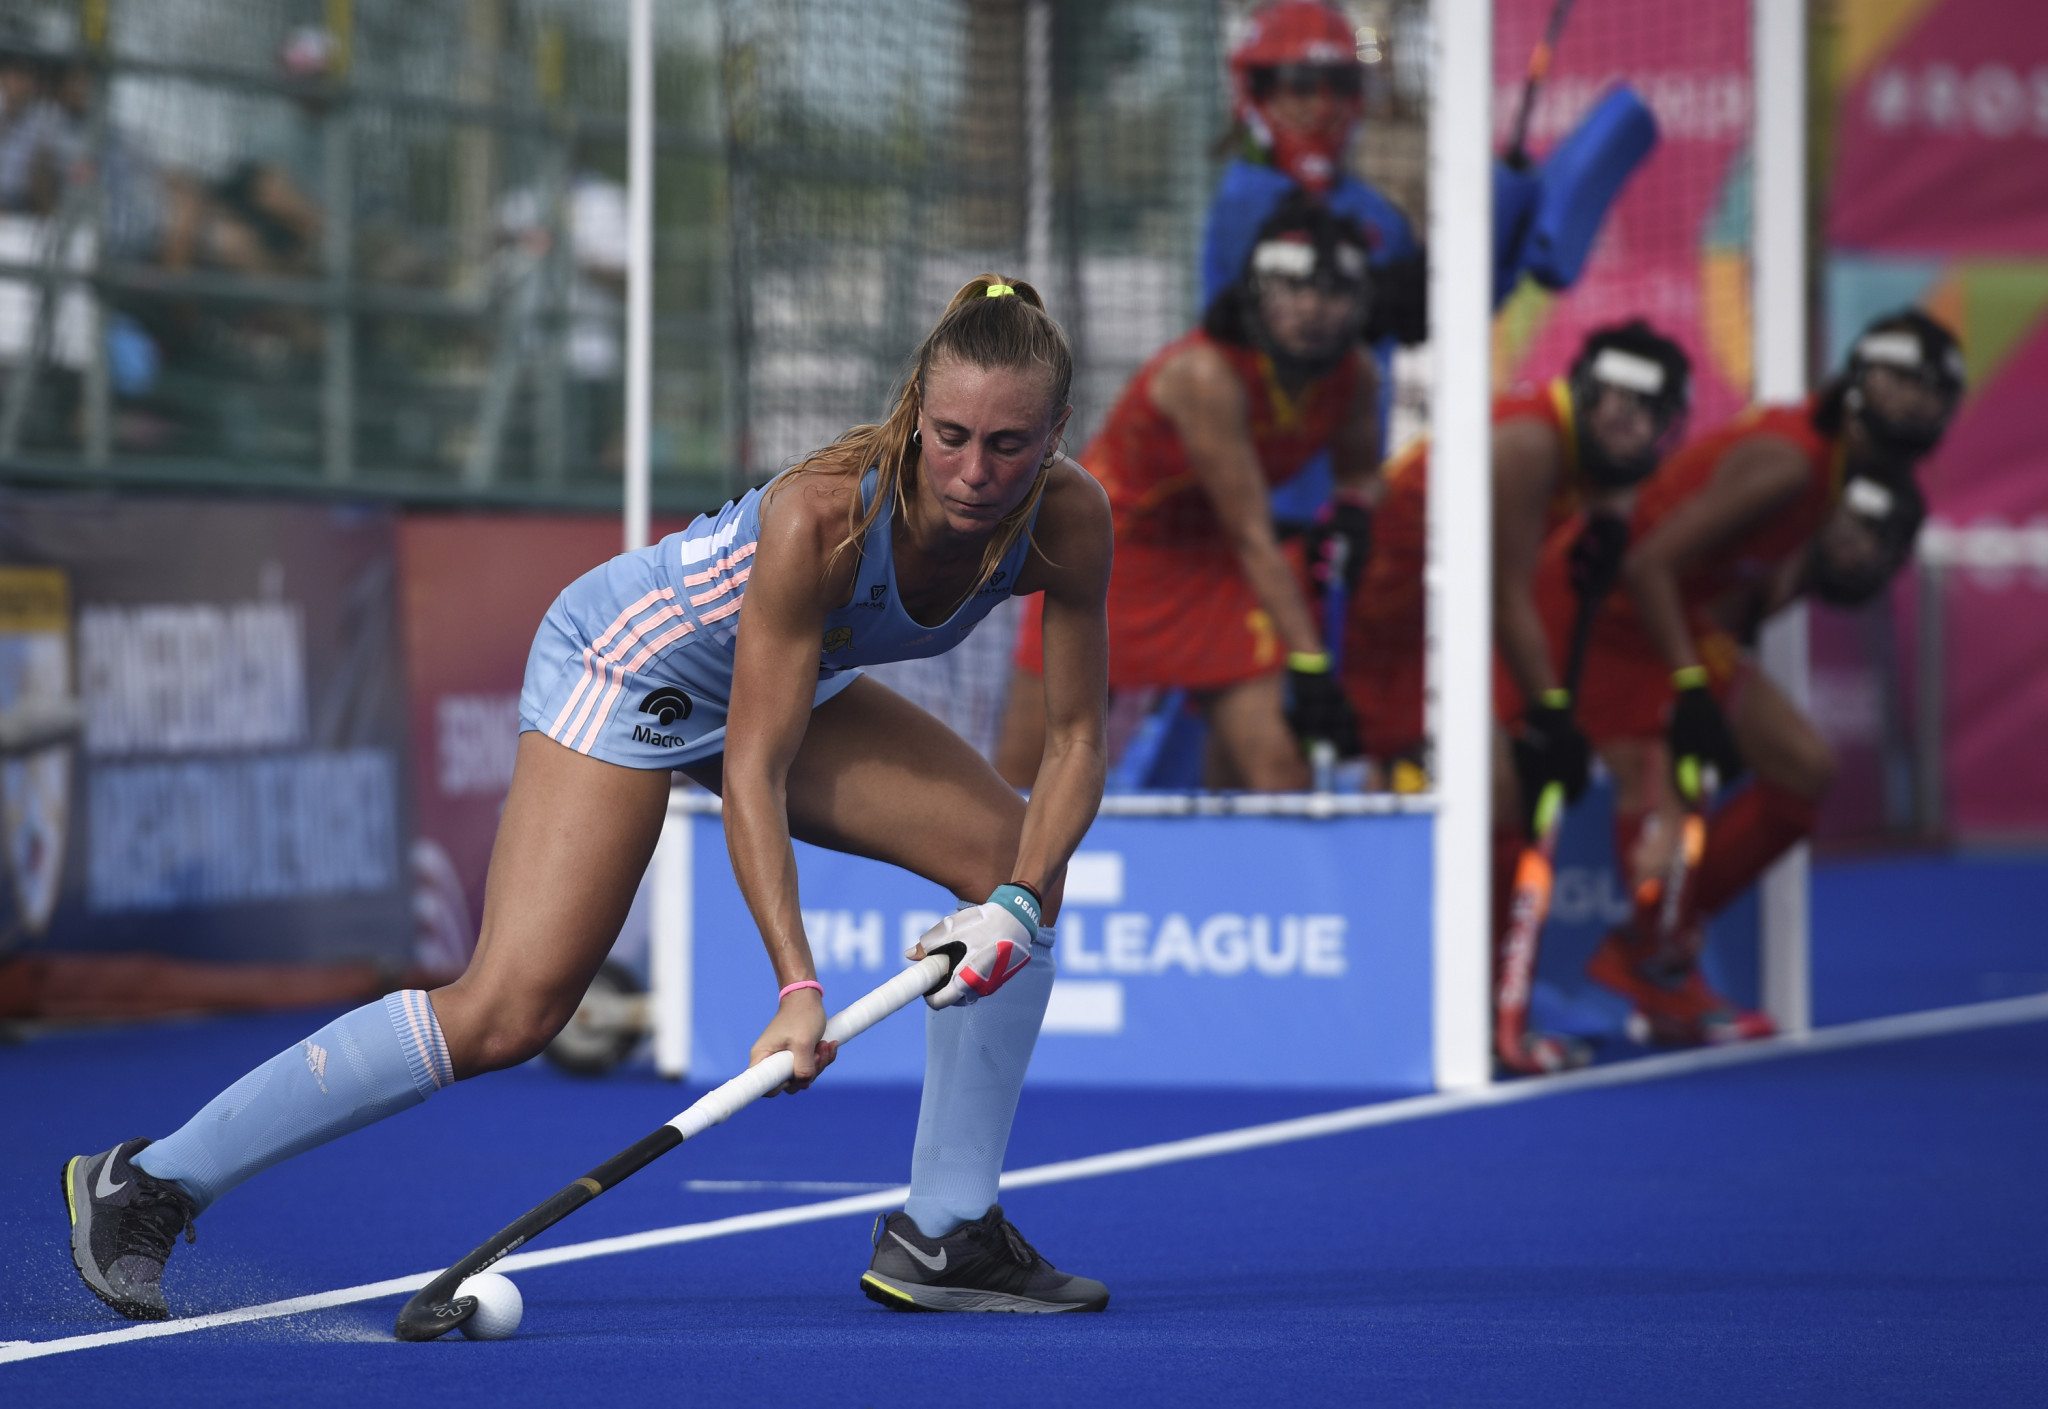 Argentina delight home crowd with success in FIH Pro League